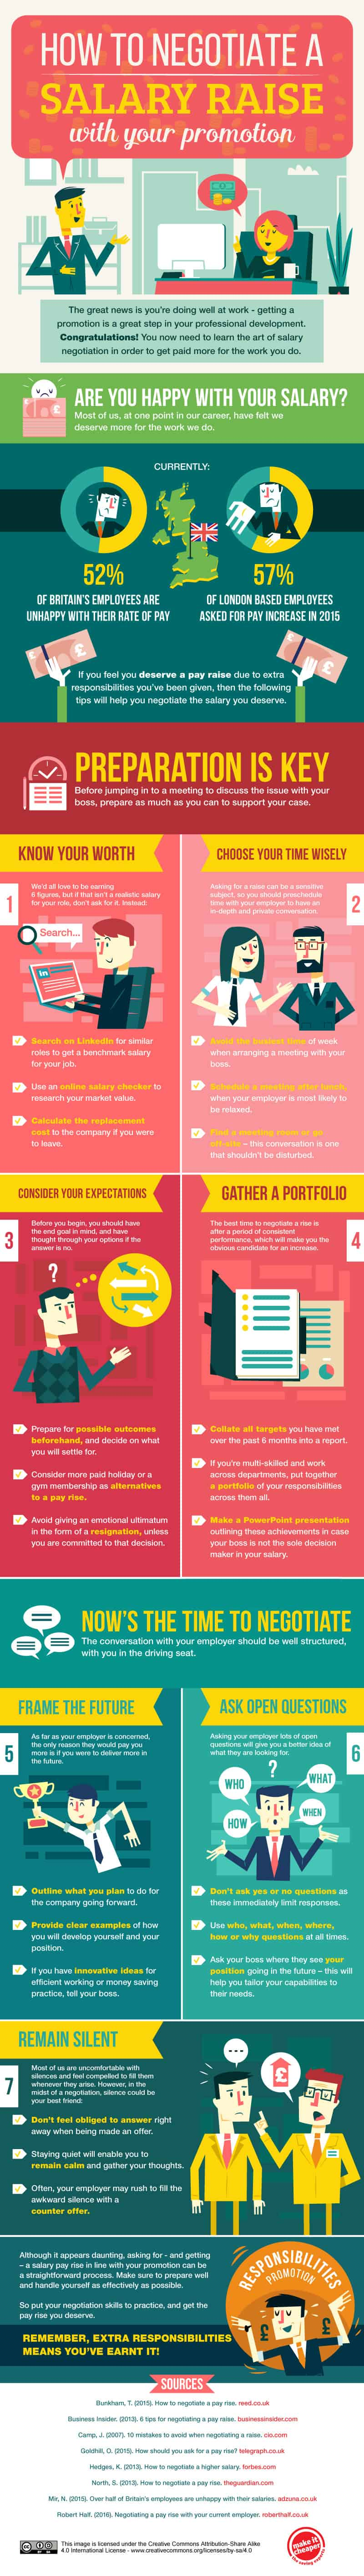 how to negotiate a salary raise with your promotion daily infographic